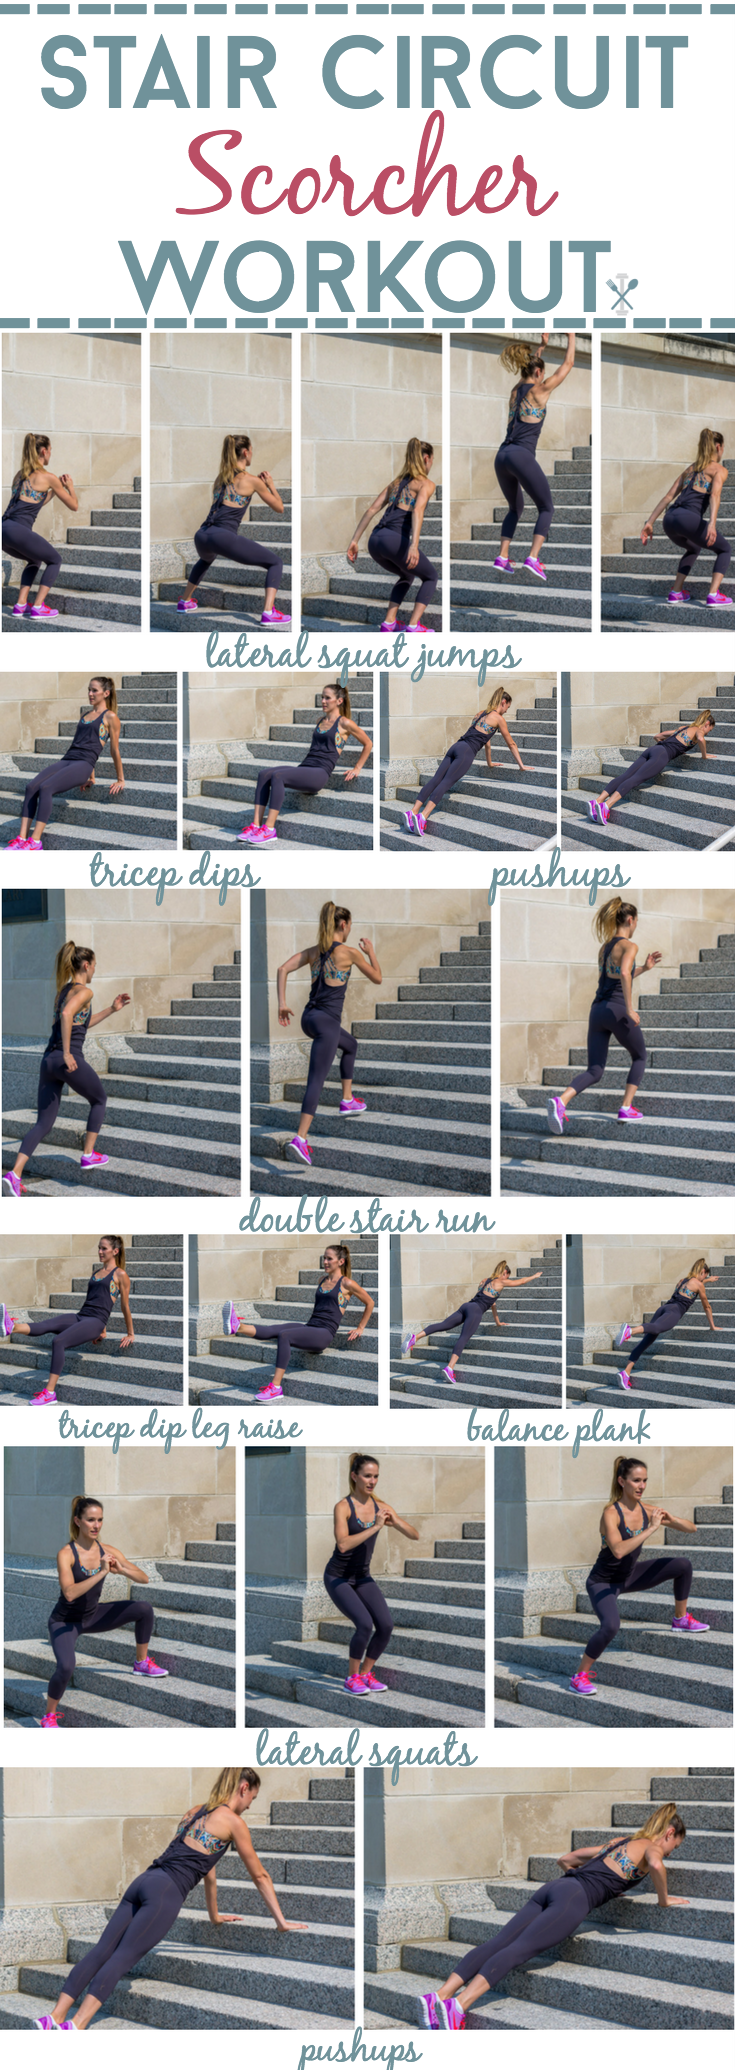 Stair Circuit Scorcher Workout Stairs Workout Full Body Cardio Park Workout